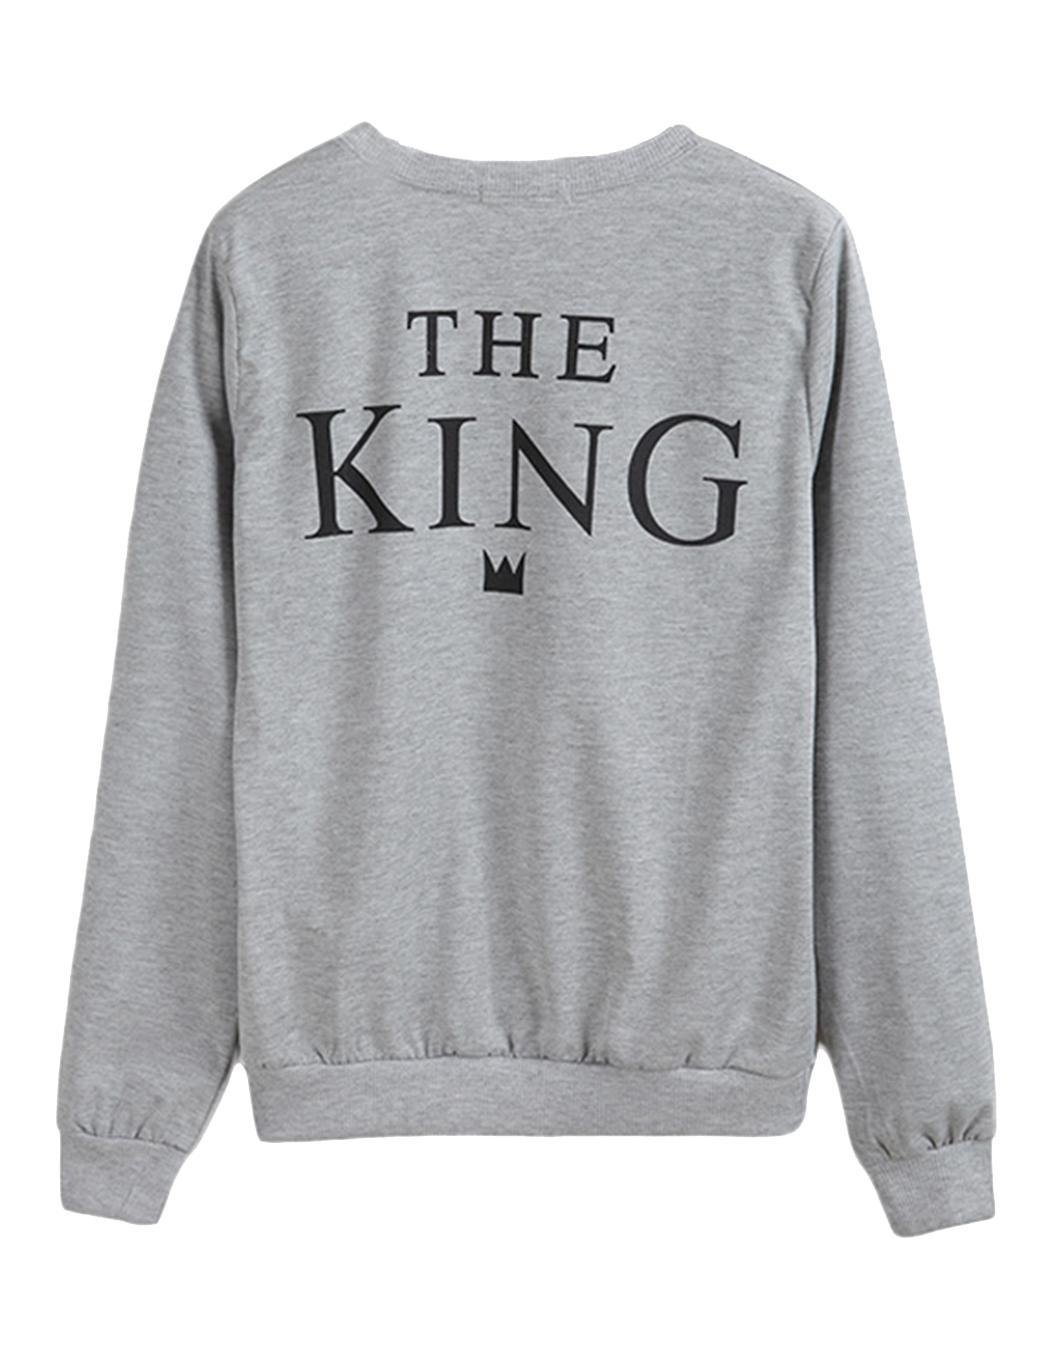 Sholdnut Couple Cute Fleece Lined Sweaters The King and His Queen Loose Pullover Sweatshirt, Grey, X-Large by Sholdnut